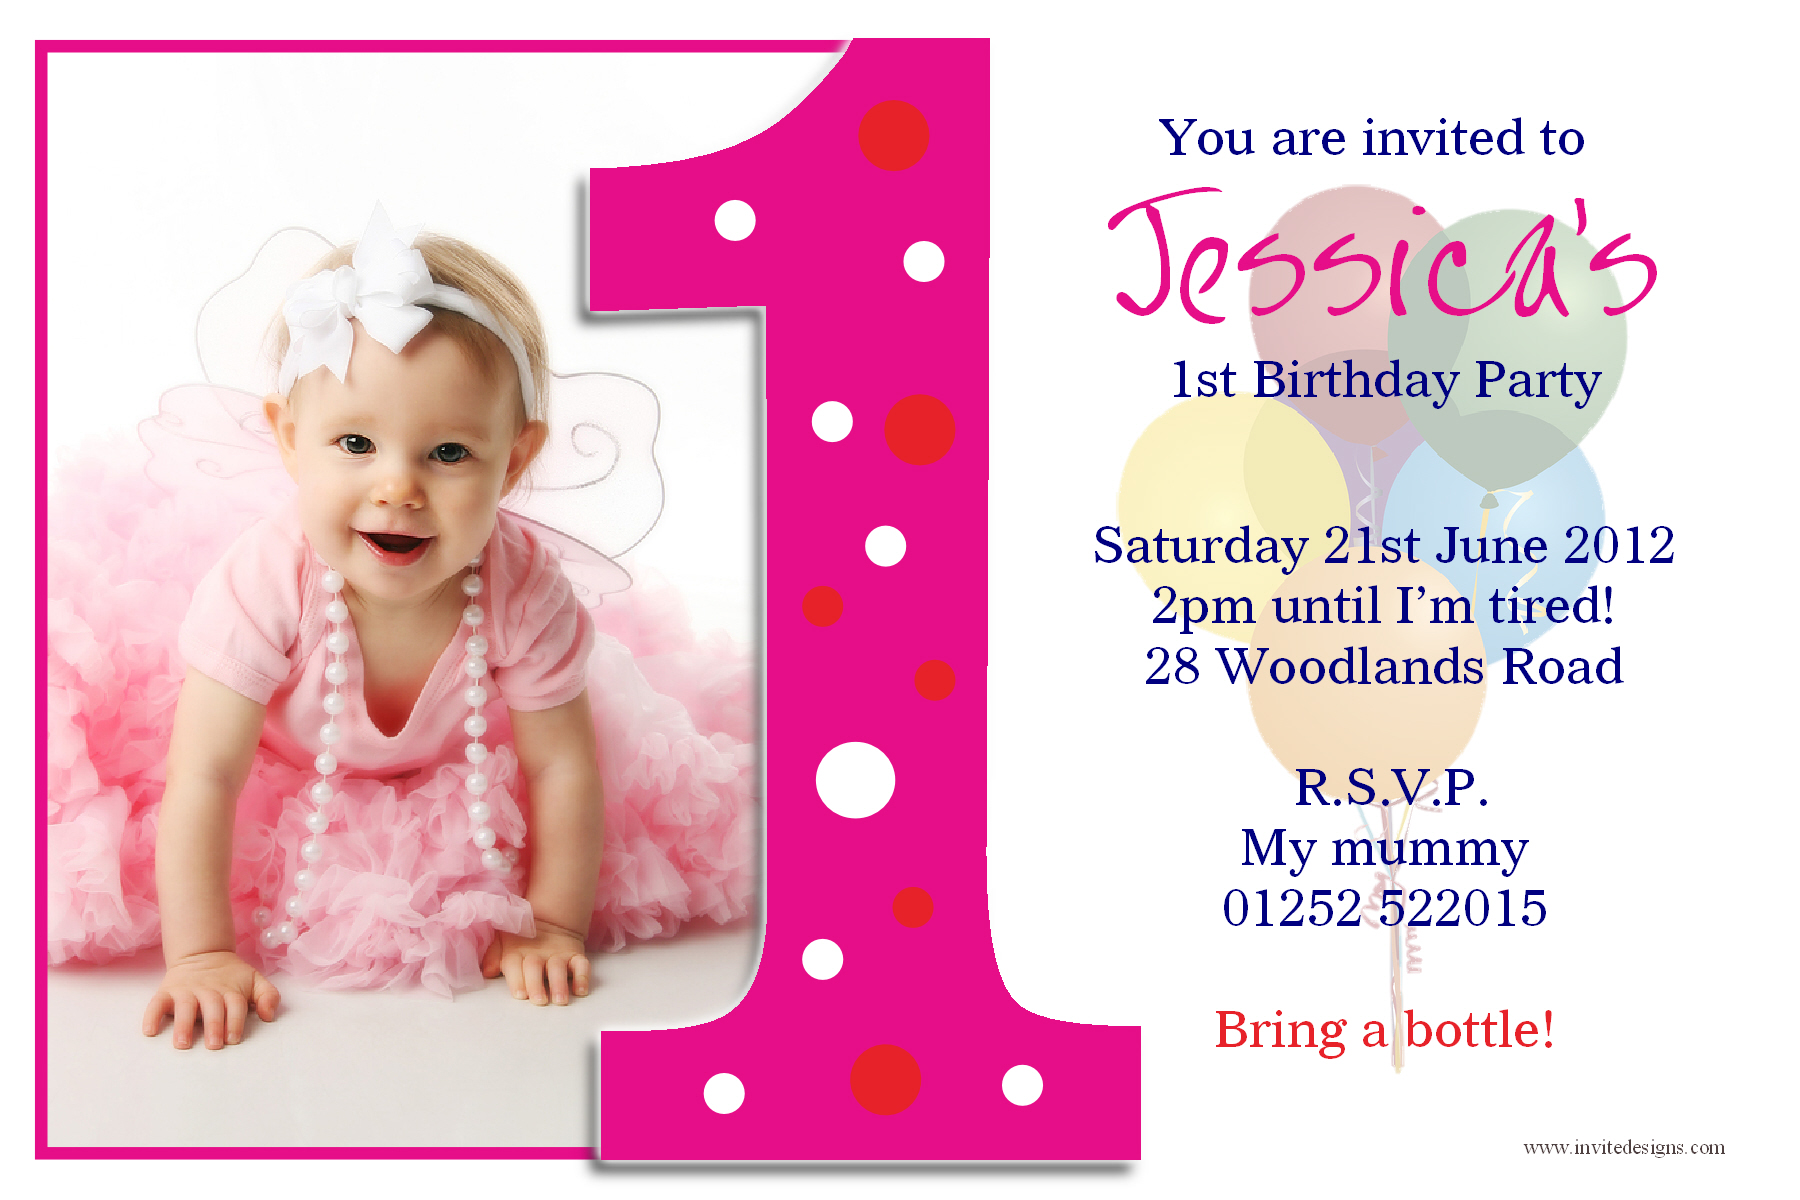 baby girl birthday invitation card design ; beautiful-ideas-first-birthday-invitation-cards-one-years-pink-color-template-designing-real-picture-baby-girls